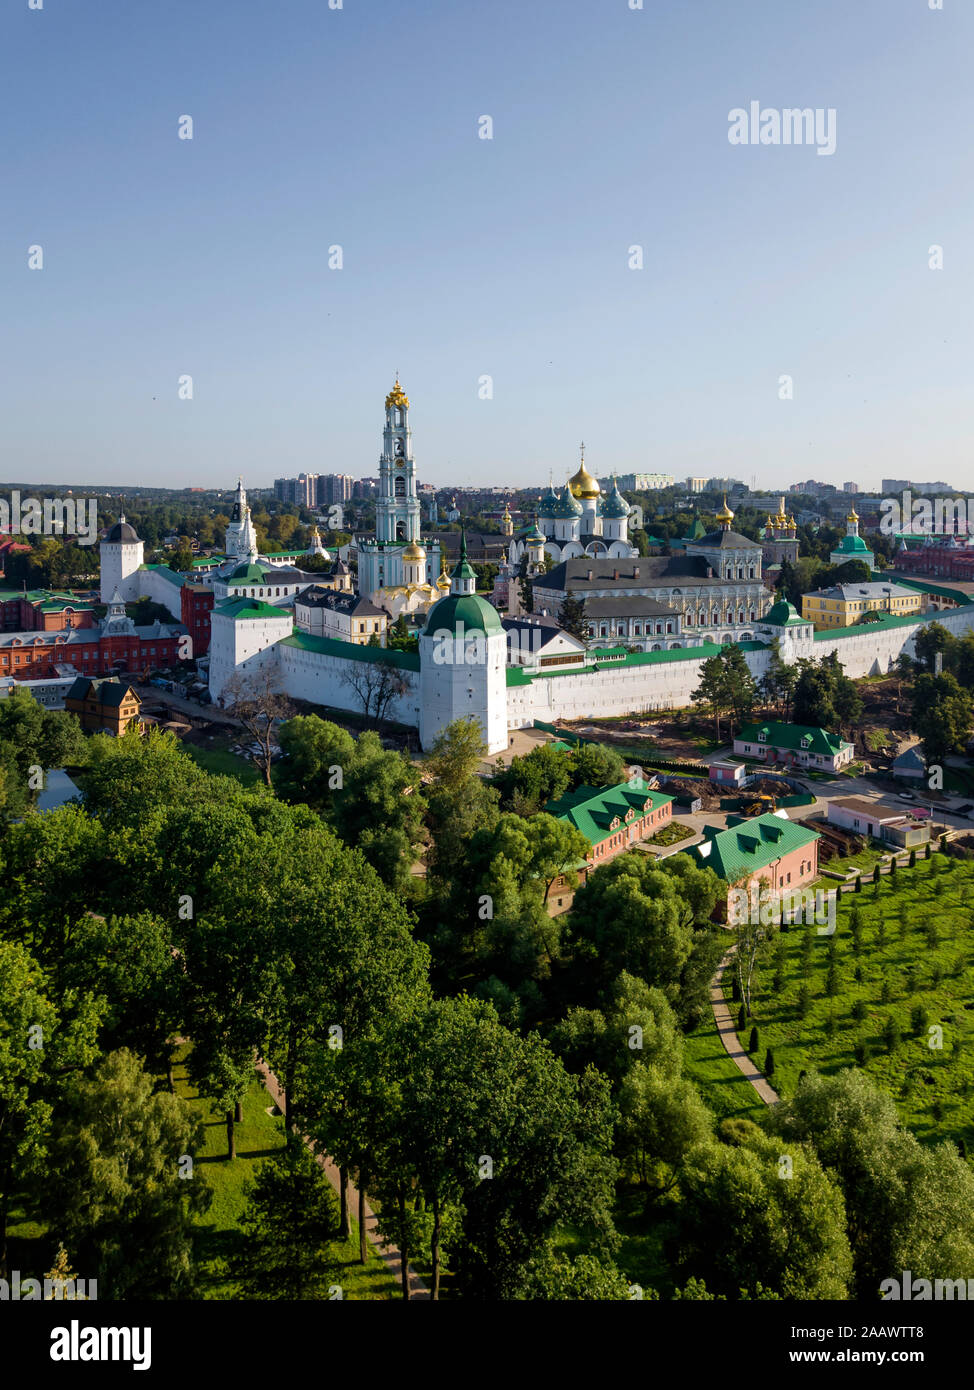 Trinity Lavra Of St. Sergius against clear sky in town, Moscow, Russia Stock Photo